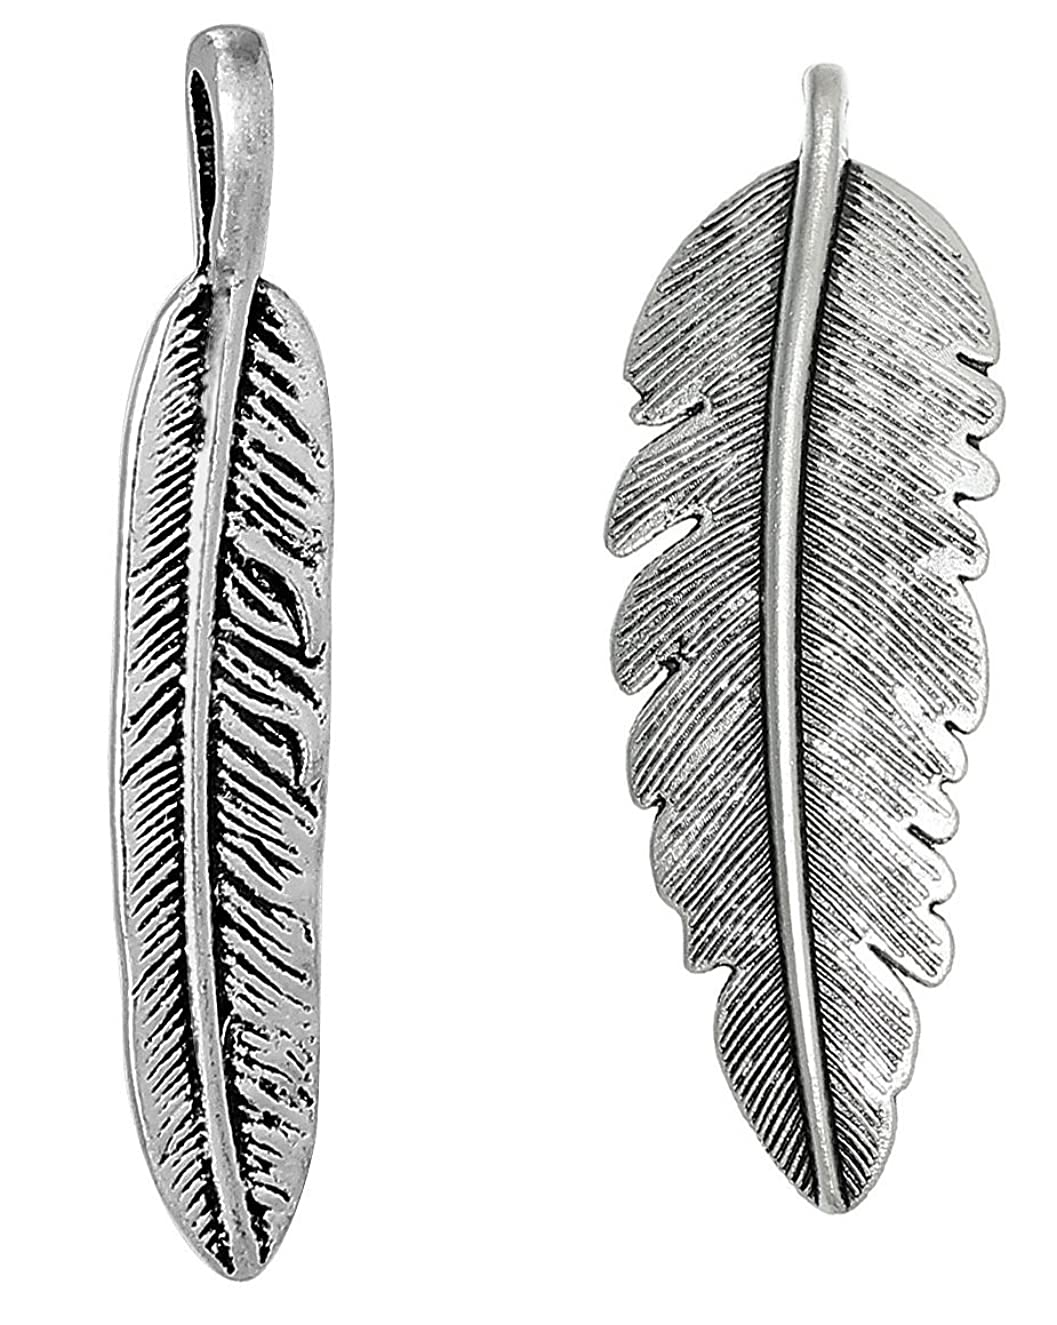 40 PC Silver Tone Large Feather Charm Pendants, Jewelry Making DIY (20 of Each)